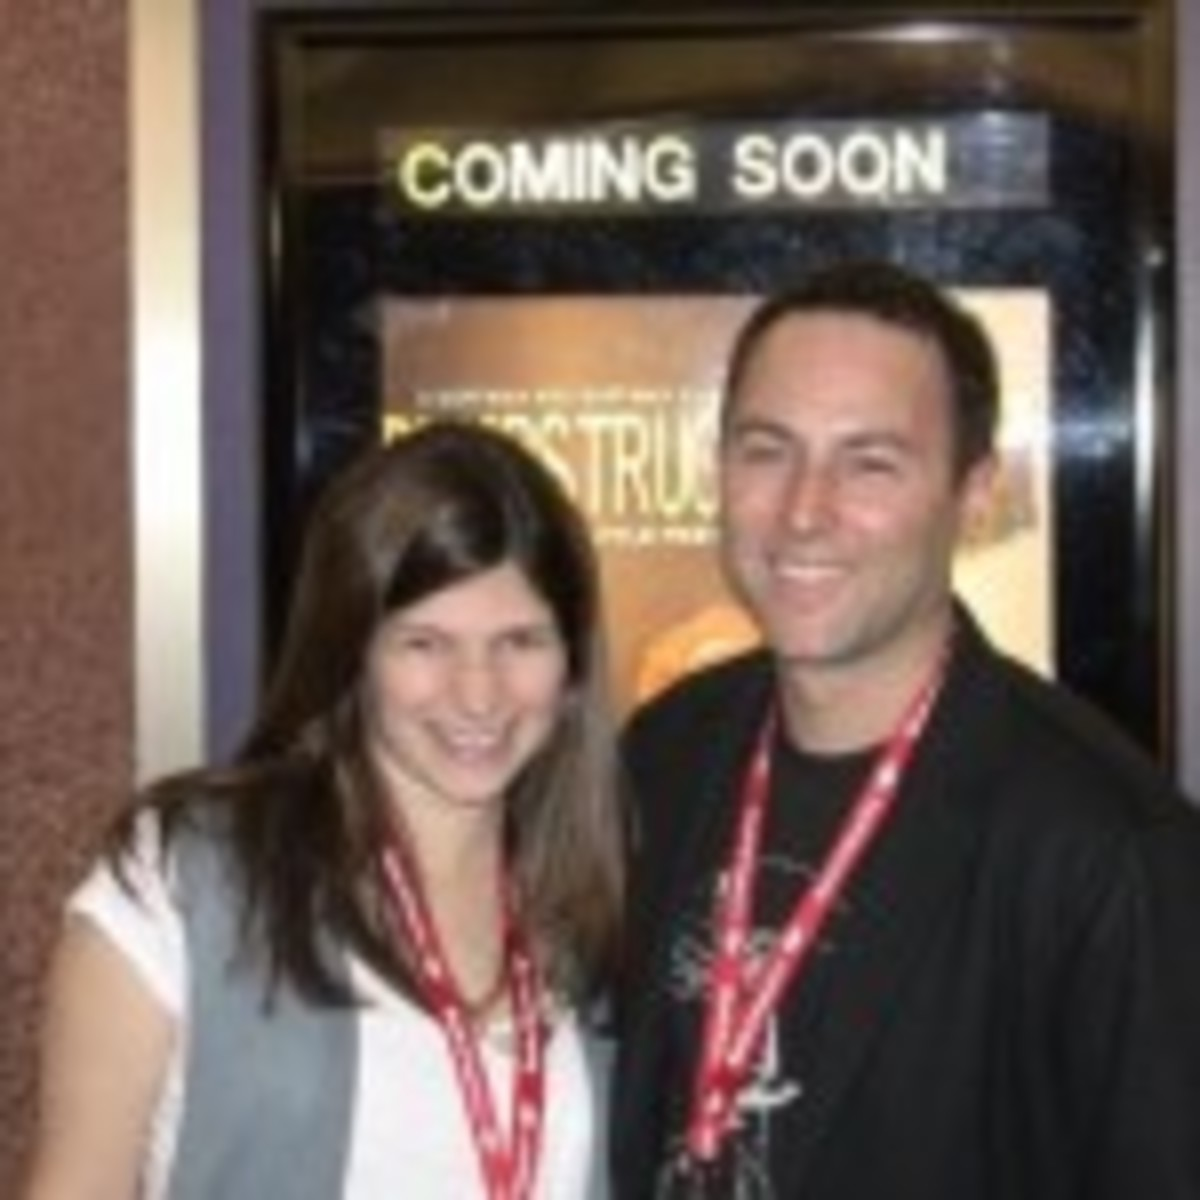 Mark Goffman and his producing partner and wife Lindsay Goffman.